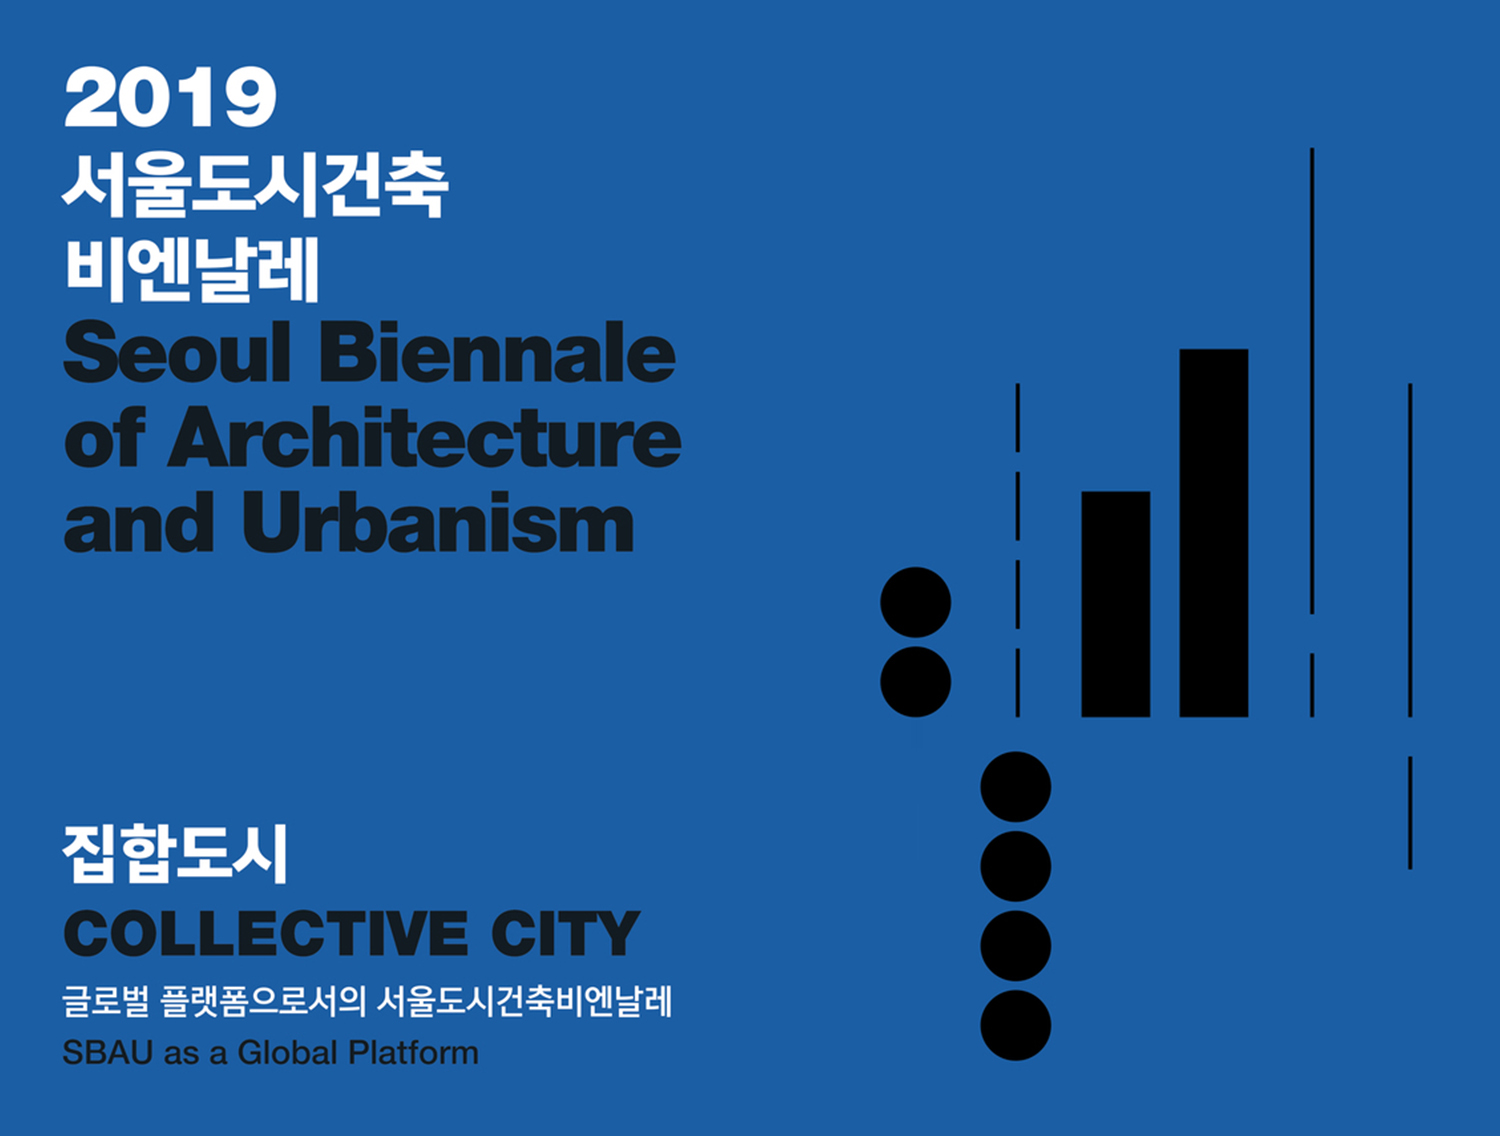 EXPO - MAR. 2019 | O+C is to be a featured exhibitor at the 2019 Seoul Biennale of Architecture and Urbanism to run from Sept.-Nov. in the Donuimun Village